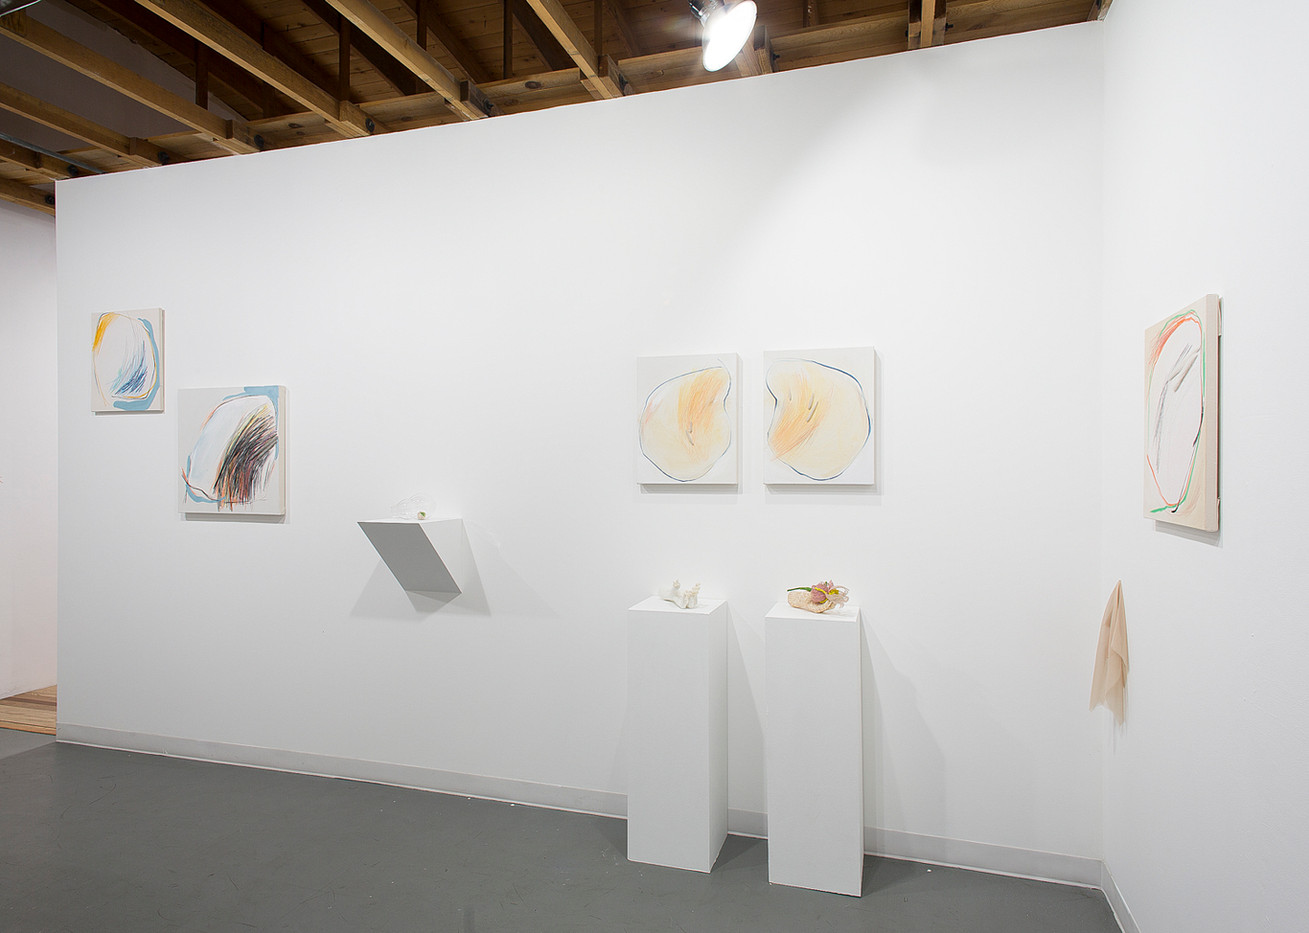 A Breath Before ​ Kaitlyn Tucek & Lindsay Smith Gustave ​ ALTO GALLERY Denver, Colorado  ​ December 2018 – January 2019 ​ A Breath Before​ combines the works of Kaitlyn Tucek and Lindsay Smith Gustave. The first two-person exhibition between Tucek and Gustave, ​A Breath Before​ raises questions of instinct, patience, and motherhood. This exhibition brings together each artists' independent reaction to their experience as mothers, one equally stoic and dynamic, the other delicate and composed, but both vulnerable in their contemplation of the space that exists between the body and that from which it grows. ​ Tucek follows instinct and records the invisible momentum of a body in space. An exercise in subtlety, she records the exquisite pain and pleasure of motherhood, understanding the ebb-and-flow between both. Representations of a monolithic entity withstands outside forces, and protects, while still understanding the limits of control. An object, suspended in time, taking a breath in contemplation of the pace and multitudes of life. Serving as a pillar or monument to life, overlooking the circumstances gained by the course of events and the resultant multitudes of an individual identity. ​ For Gustave, this body of work​ e​ xplores inheritance, vulnerability, and emotional response. These vessels contain human moments: processing familial pathology and the generational self. Objects are held within specific spaces but grow to fill them. The space between object and container provides a moment to focus on the interstices connecting our physical action and our memory. These works lay bare expectations and psychoses, embrace the transparency to invite shared experience, and although intentionally contained, still flourish.   A Breath Before​ offers a pause for inhalation, the anticipation before the gentle nudge into entropy when the breath leaves the body and becomes something else of its own.